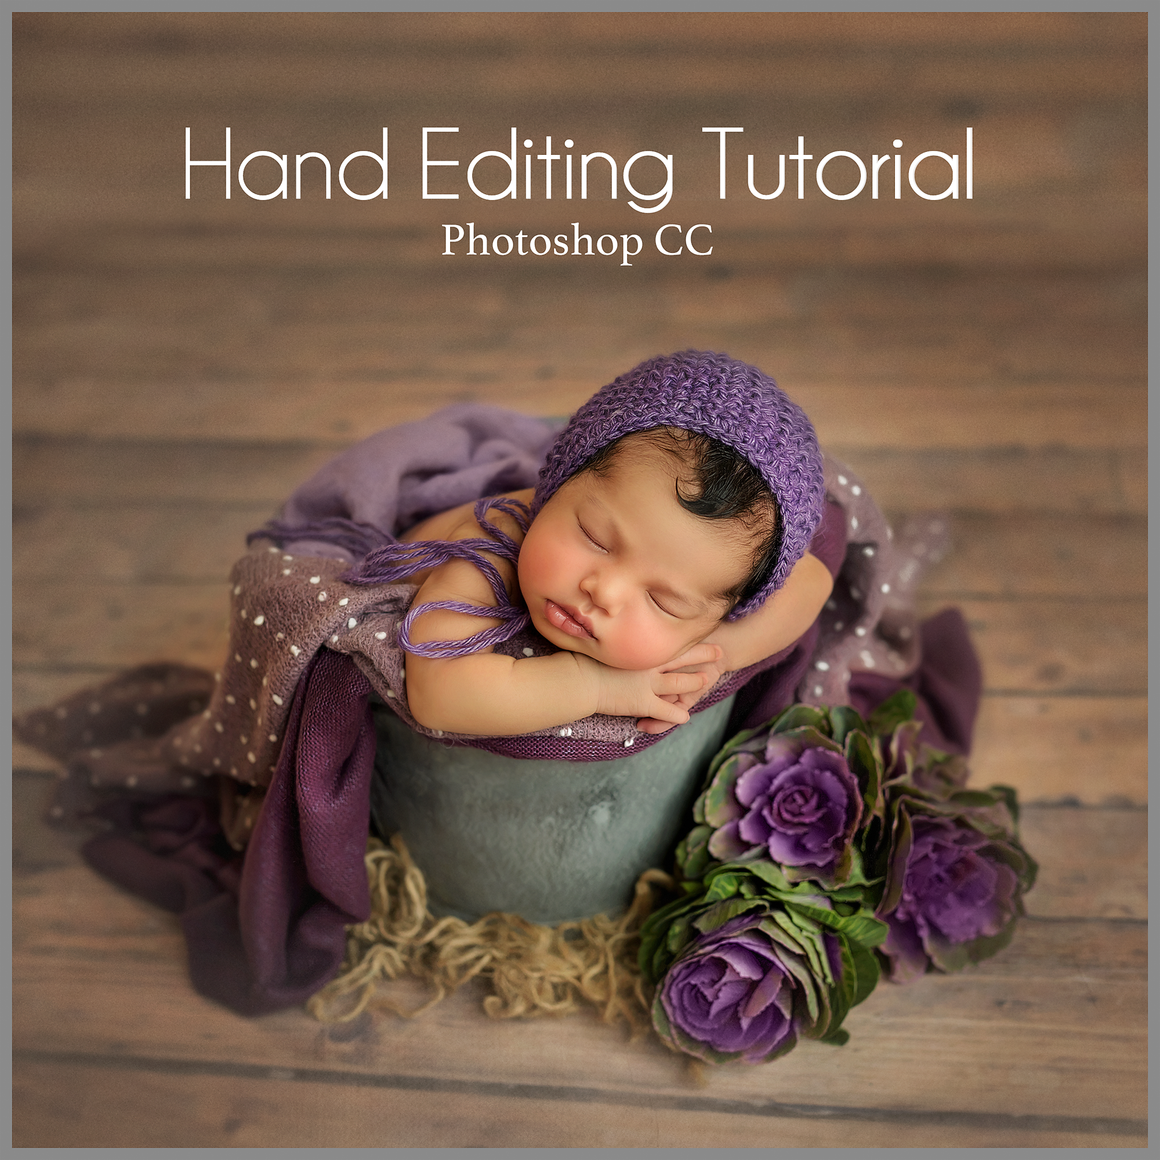 Kale Roses in Purple Newborn Editing Tutorial | Photoshop Class